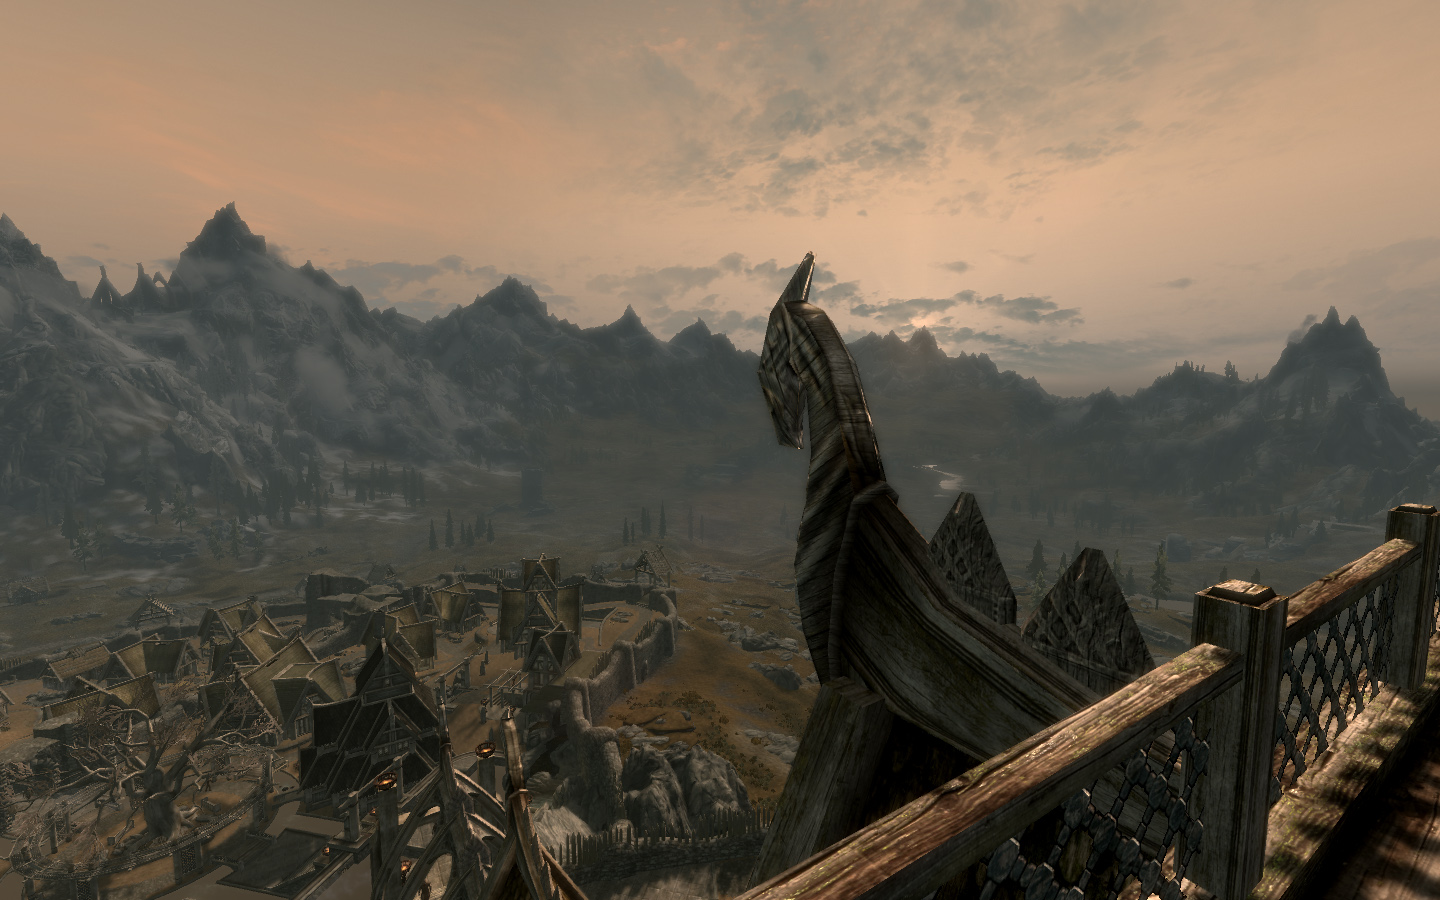 Open Cities: Whiterun from above